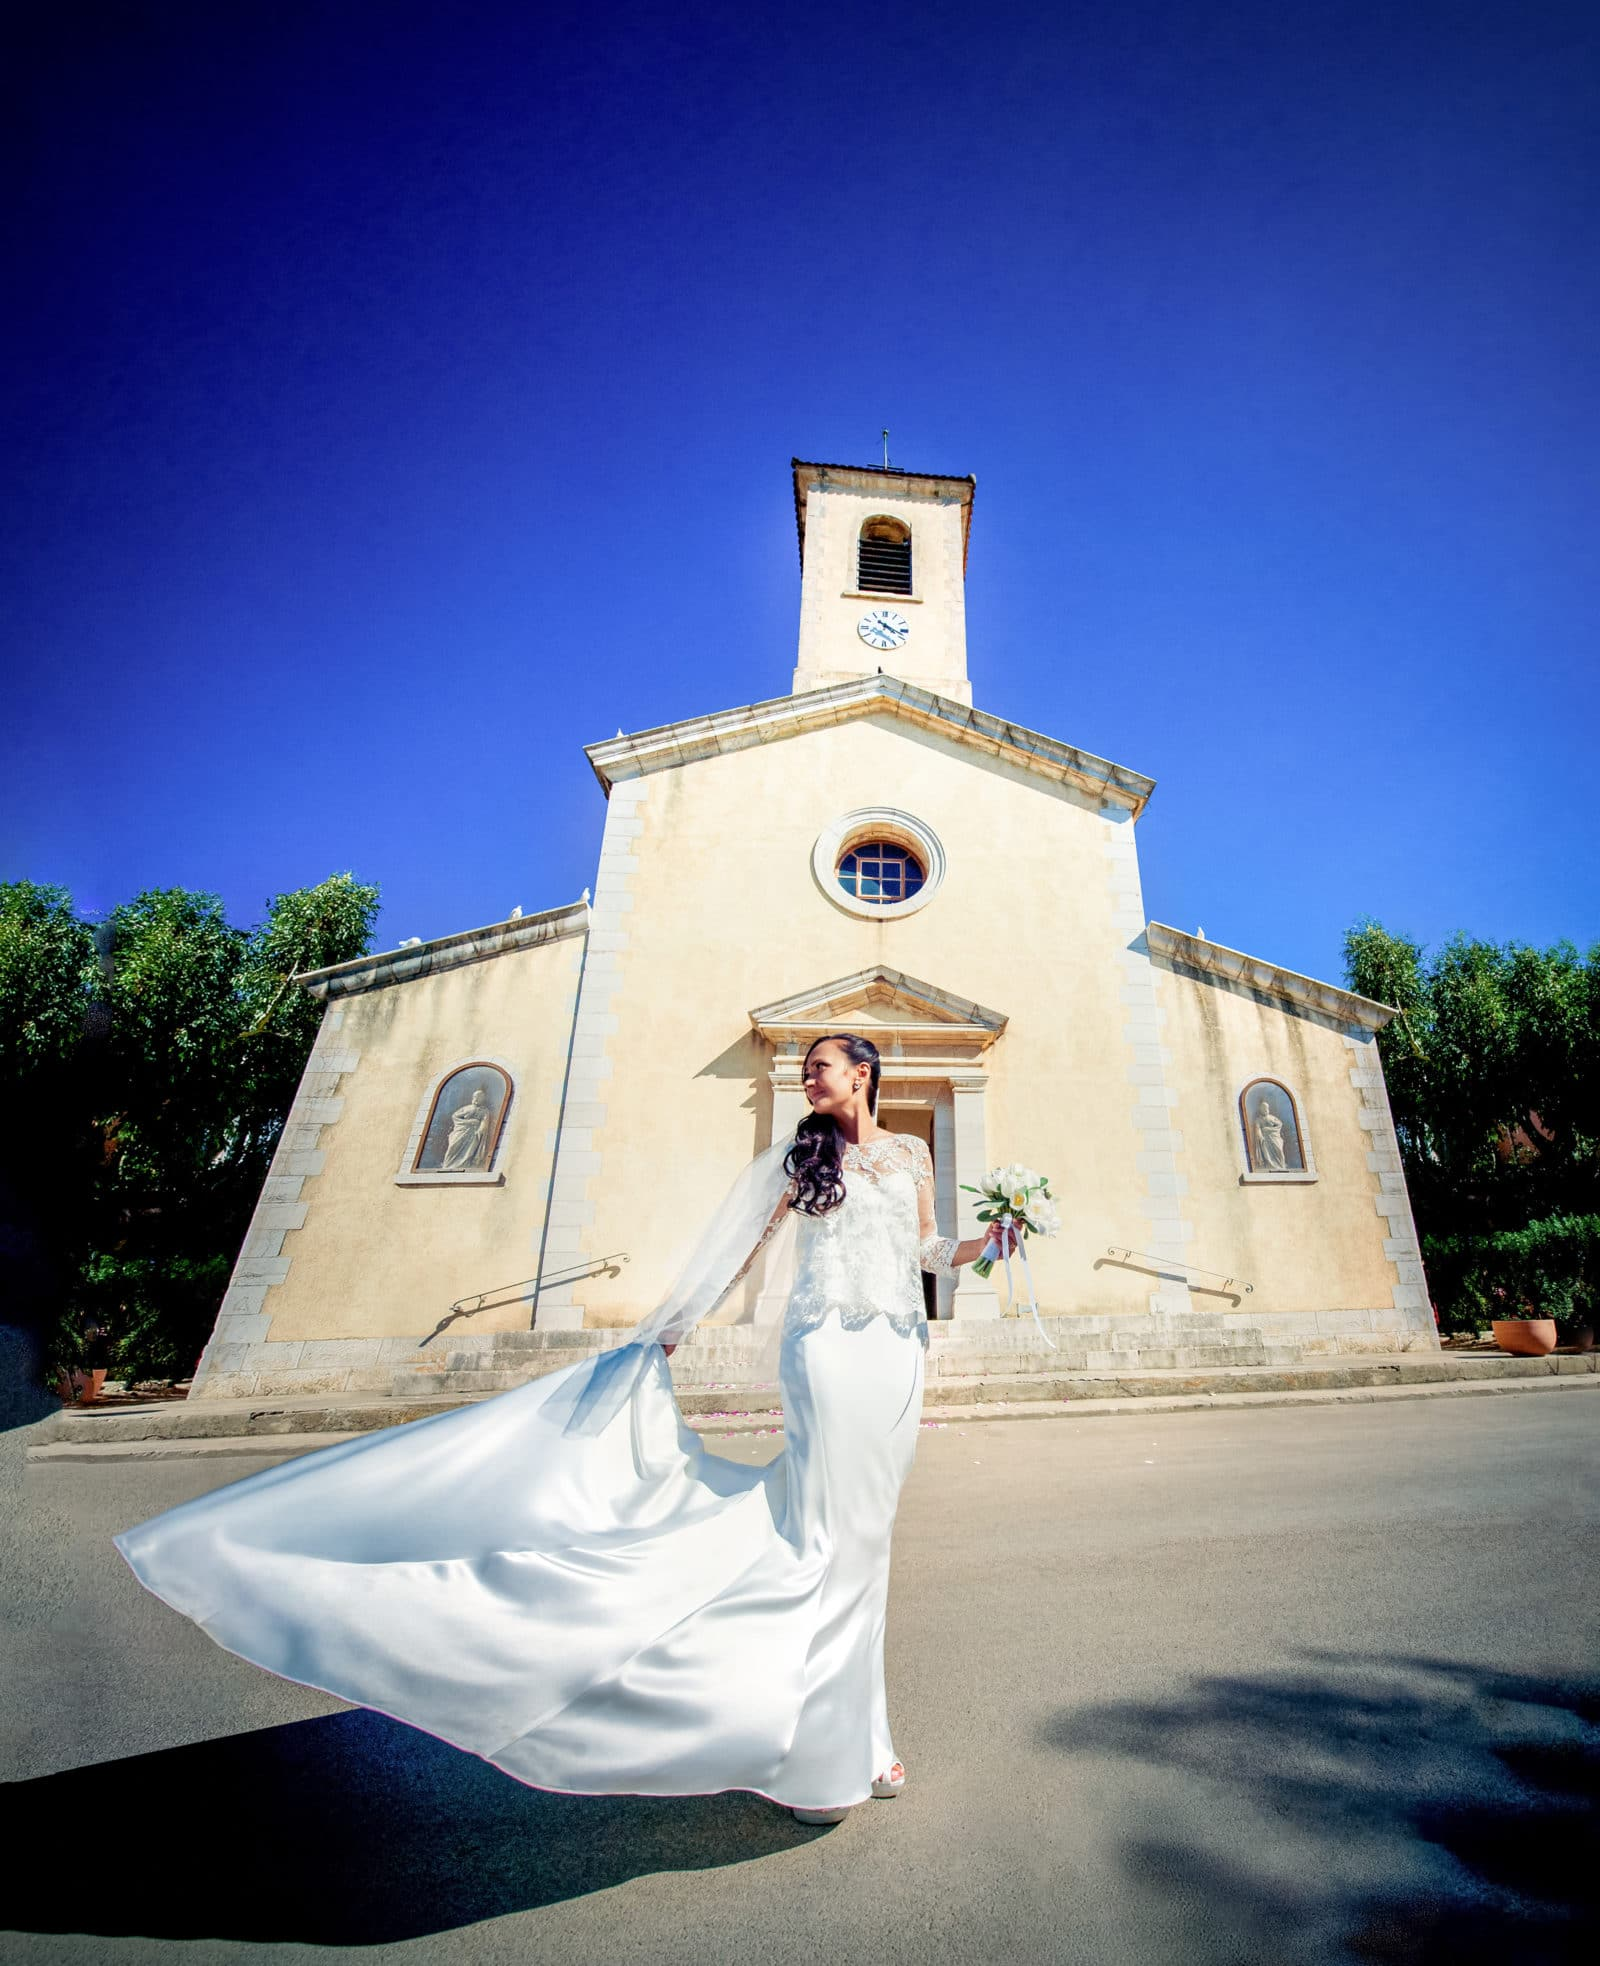 a-wedding-at-the-church-of-porquerolles-sainte-anne-eglise-4